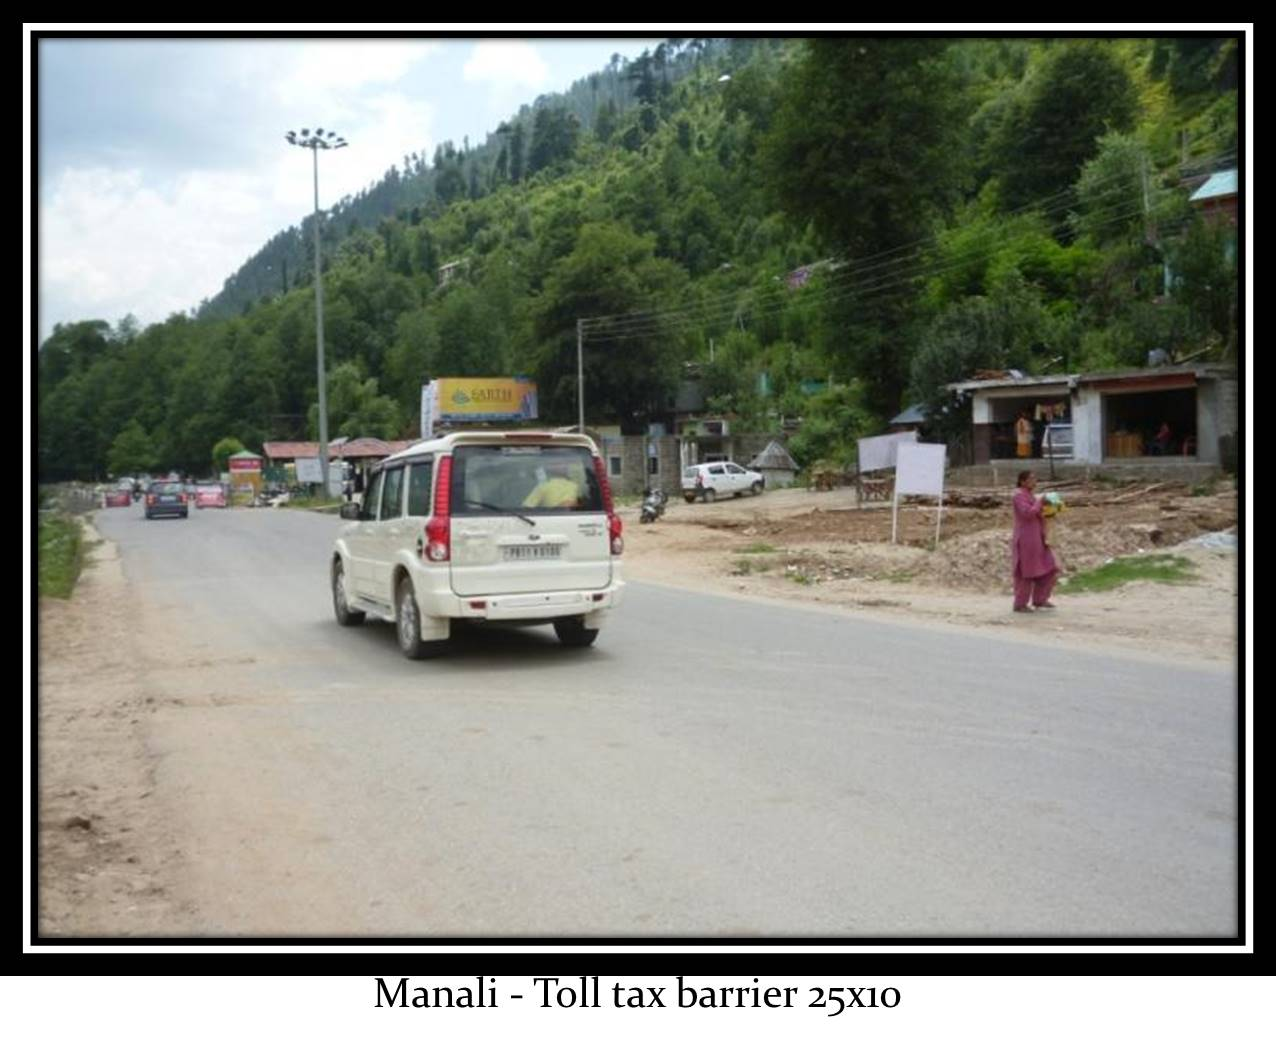 Toll tax barrier, Manali